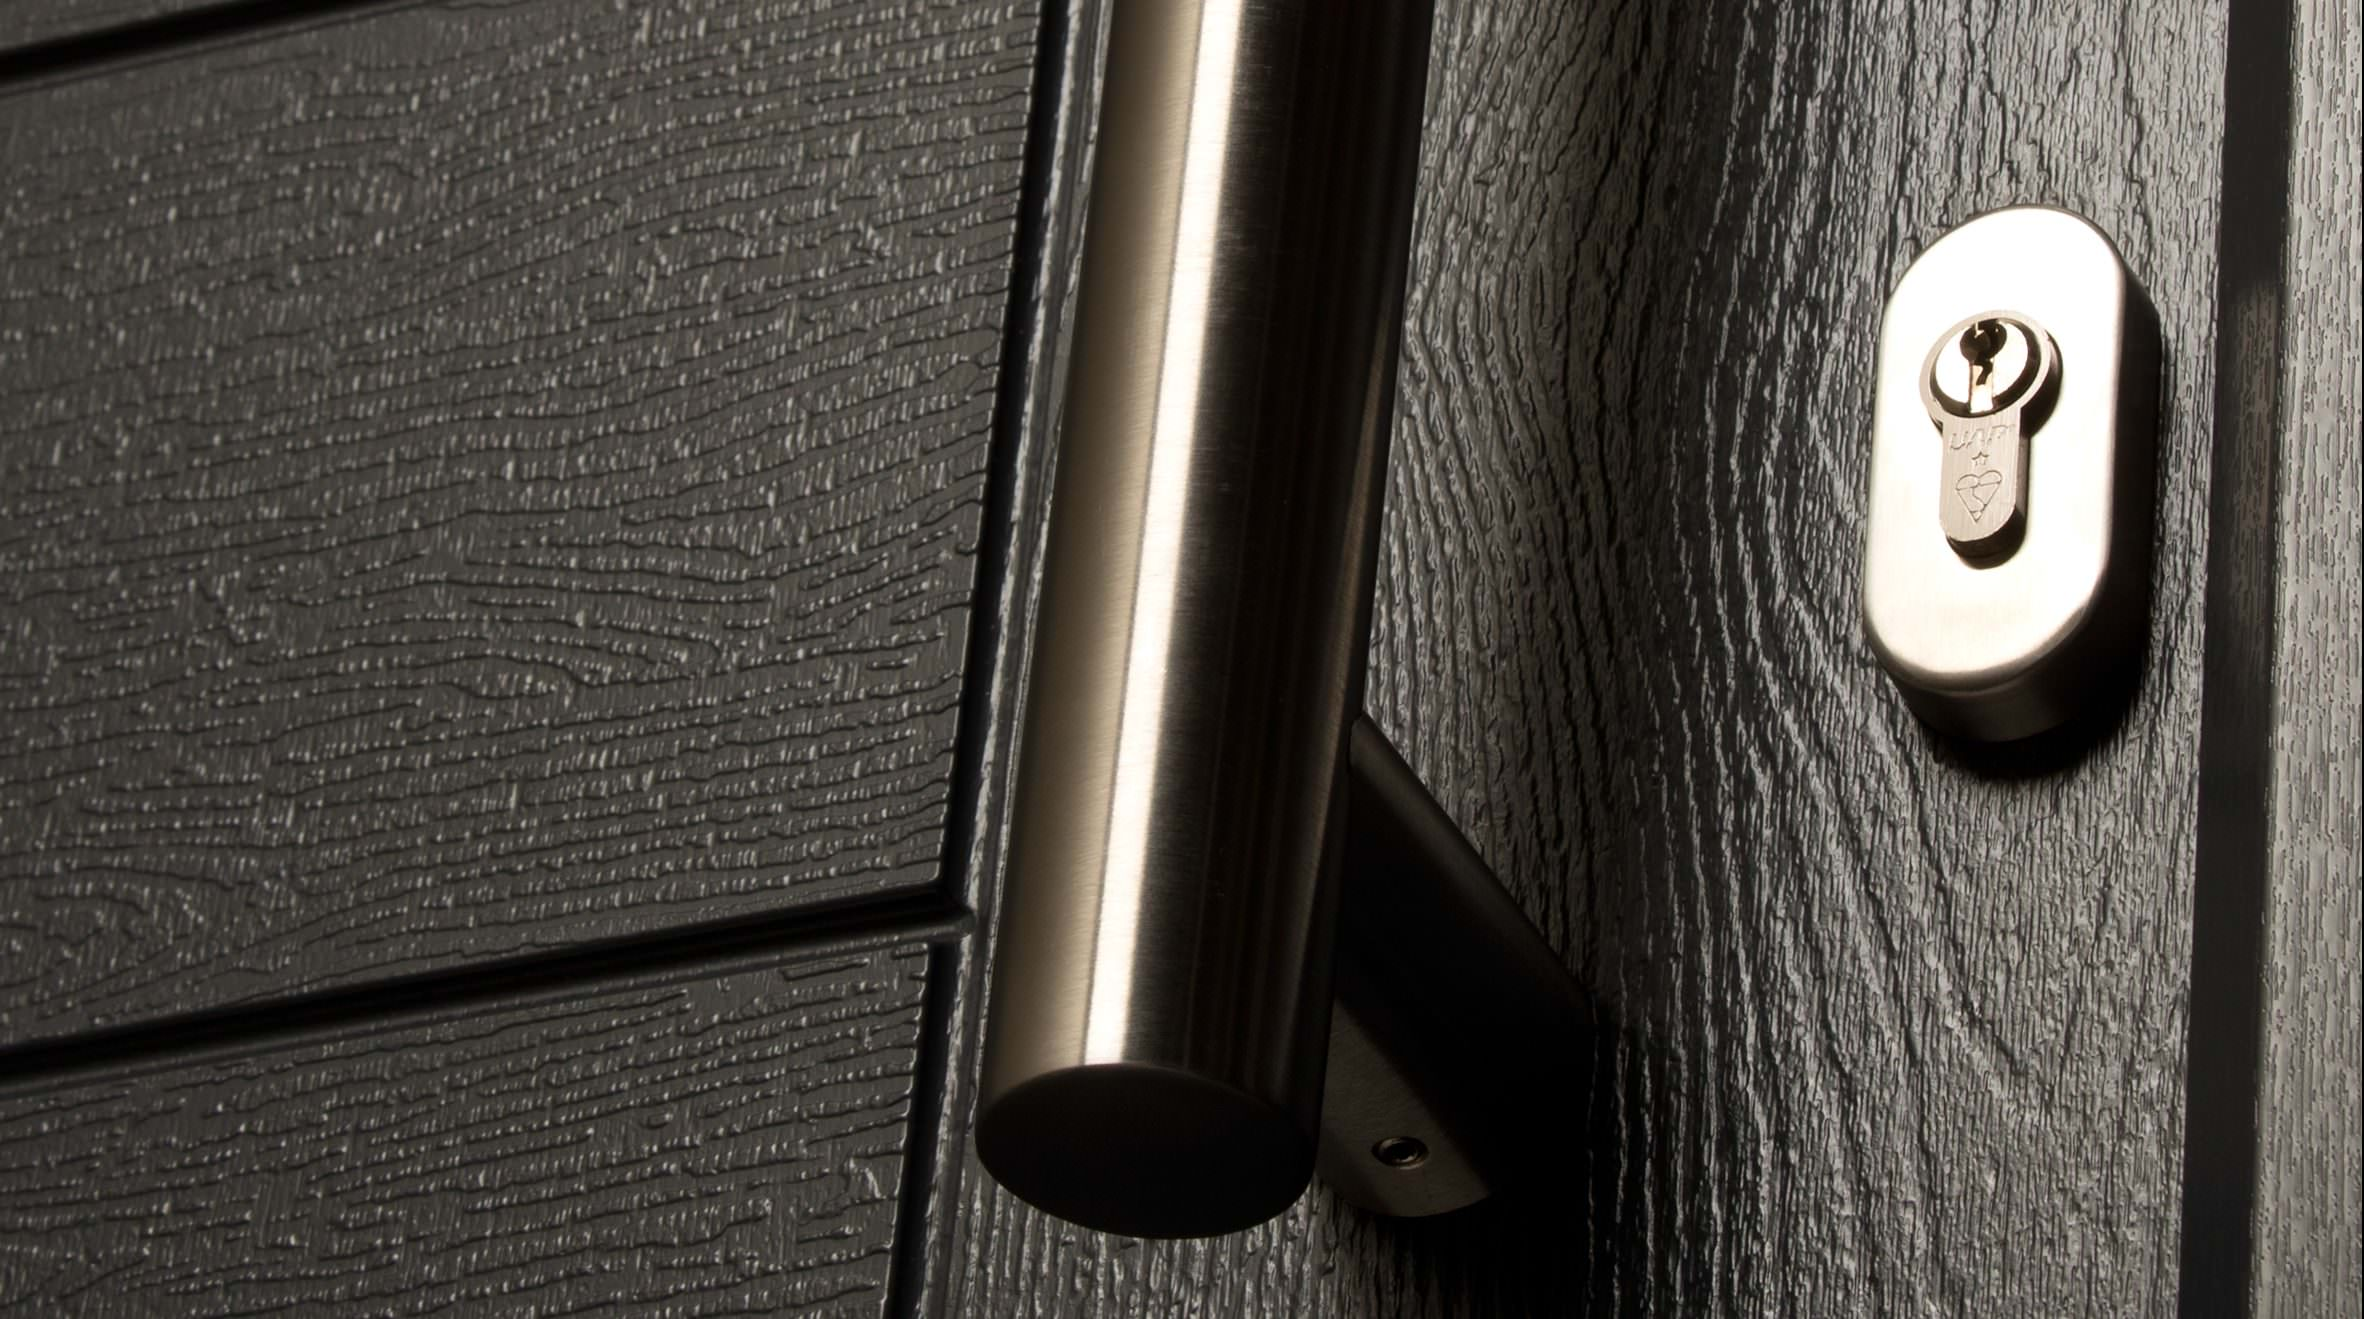 Black composite door handle detail